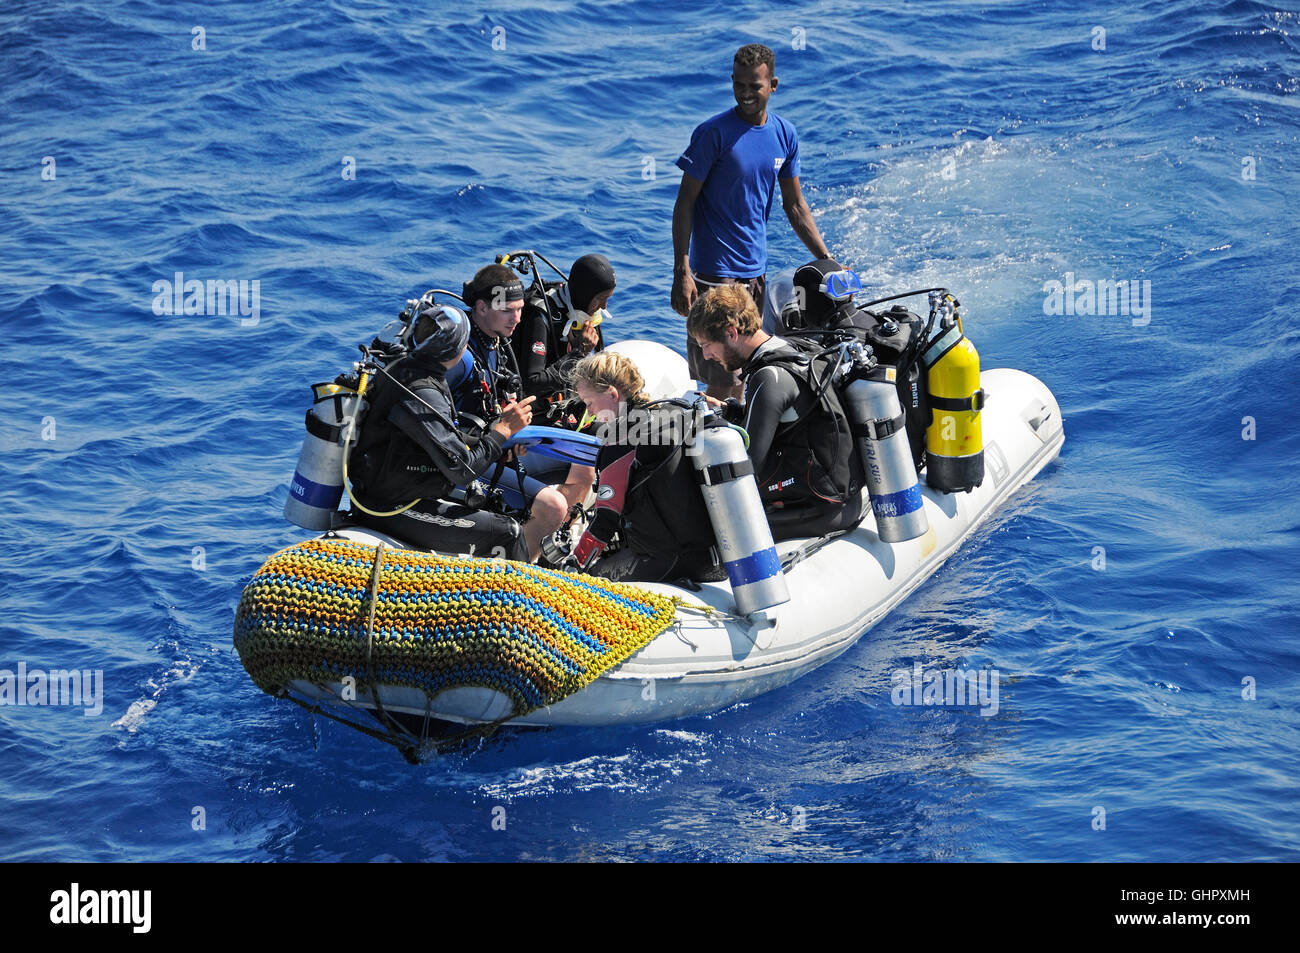 Scuba Diver In Rubber Boat Hurghada Red Sea Egypt Africa Stock - Is egypt in africa